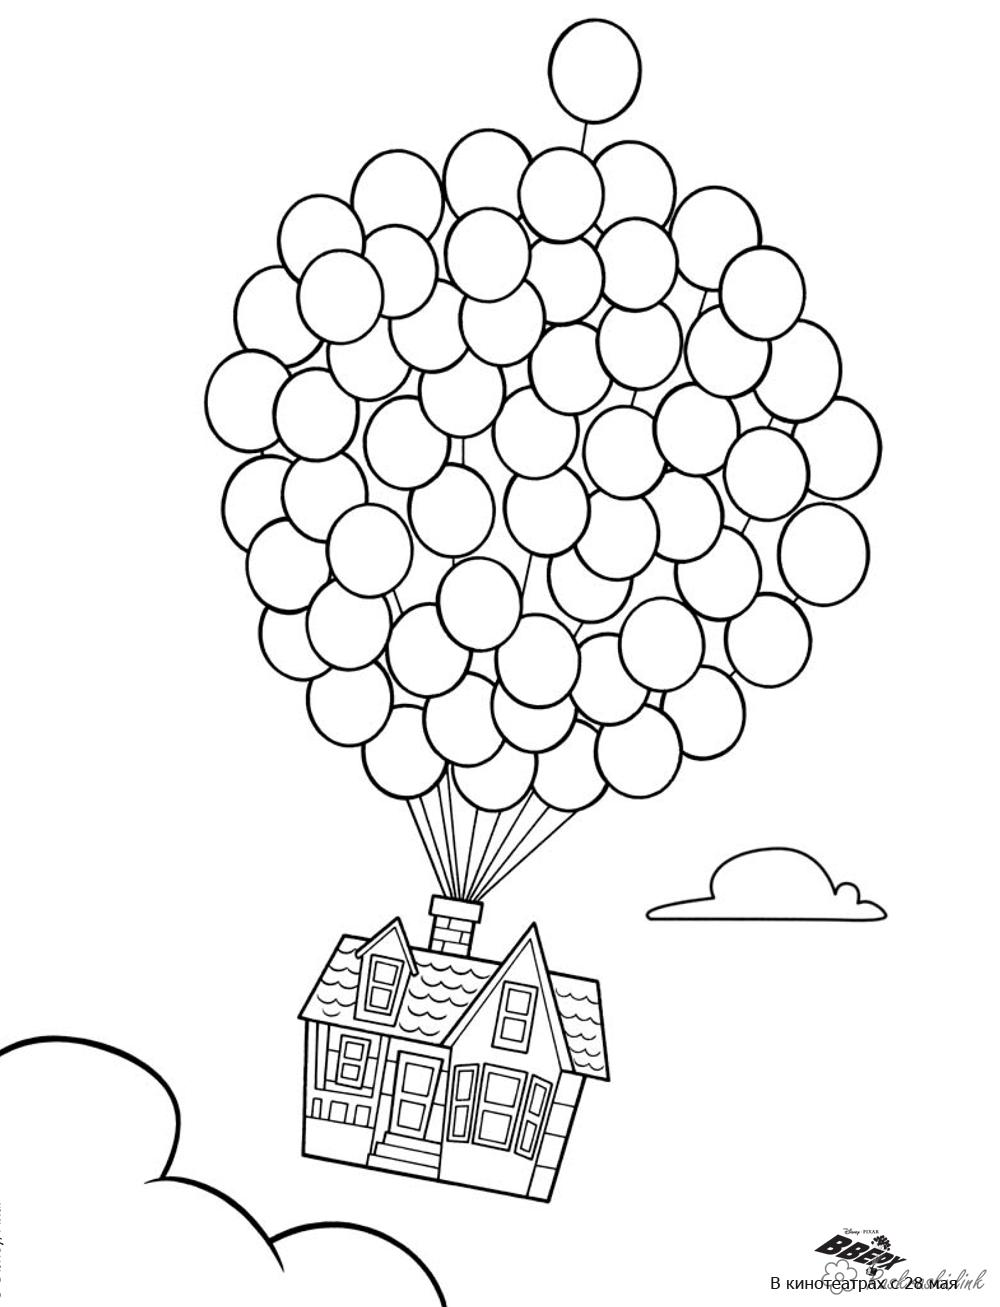 Coloring Up coloring pages cartoons, cartoon coloring pages up, house, balloons